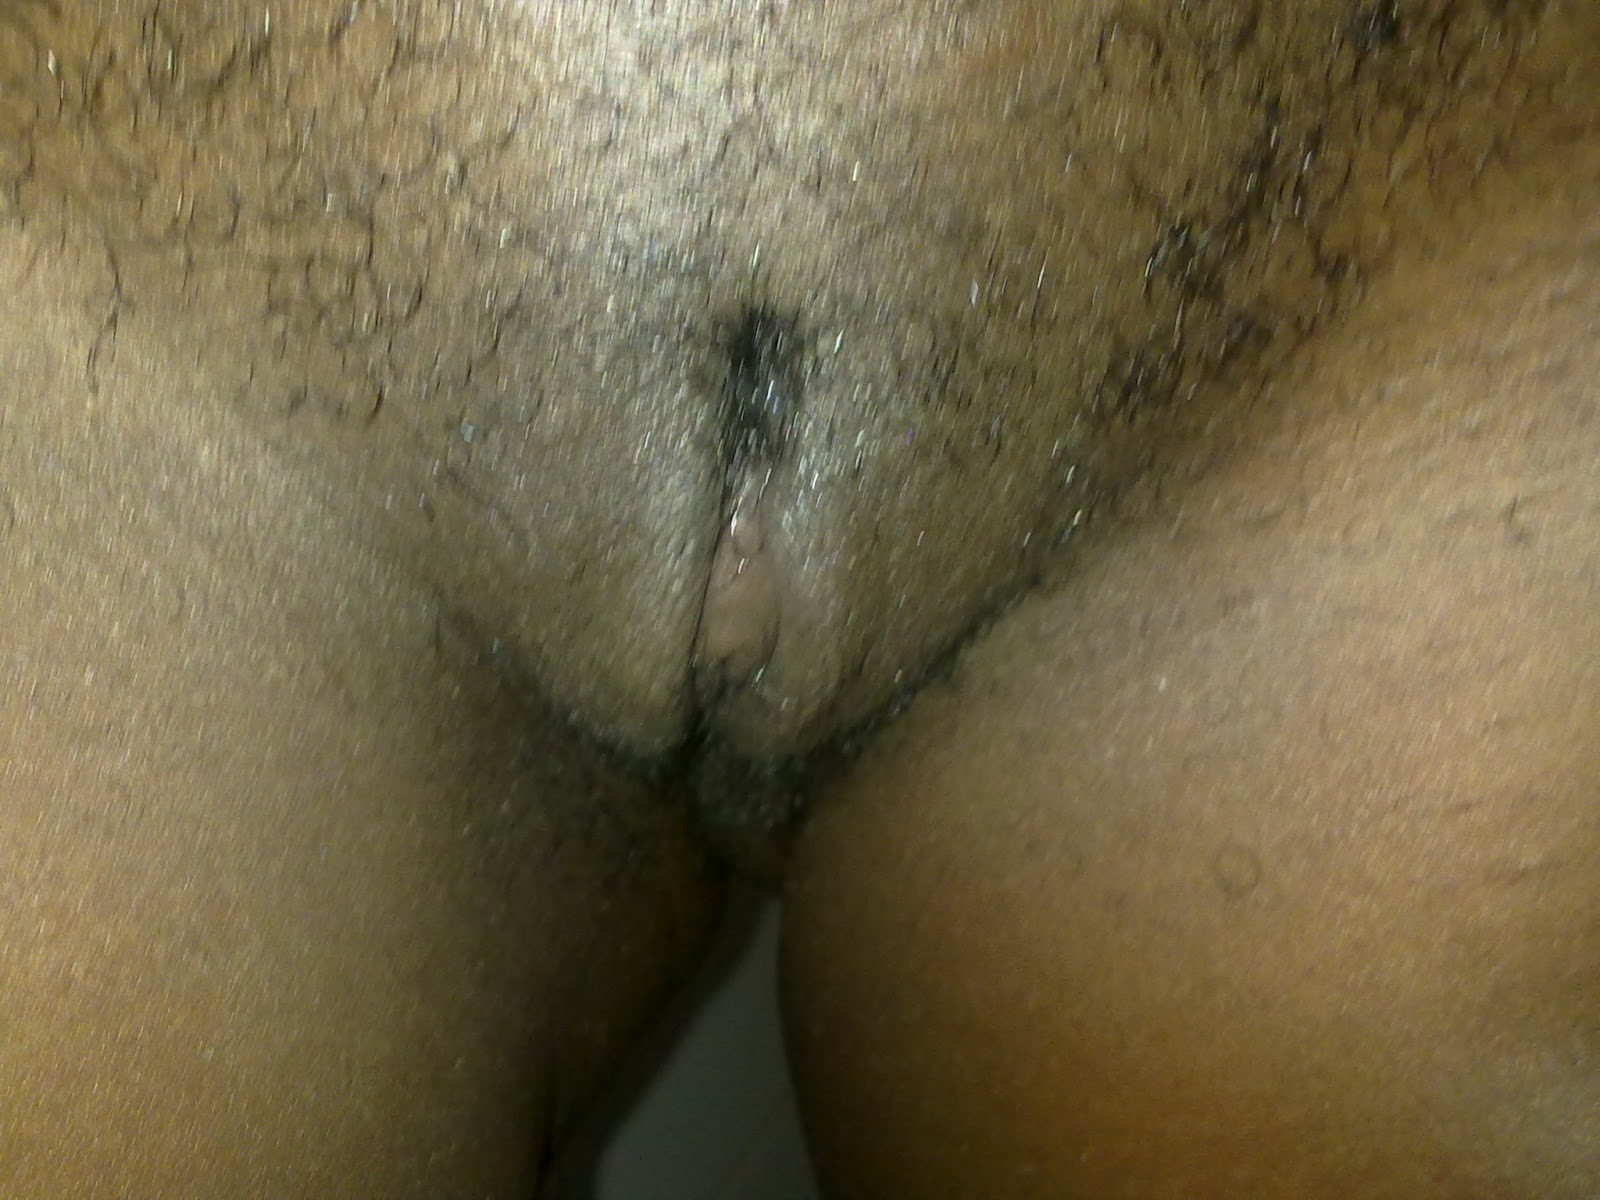 Kenyan Girls wet and horny | Boobs Pussy Nude Photo